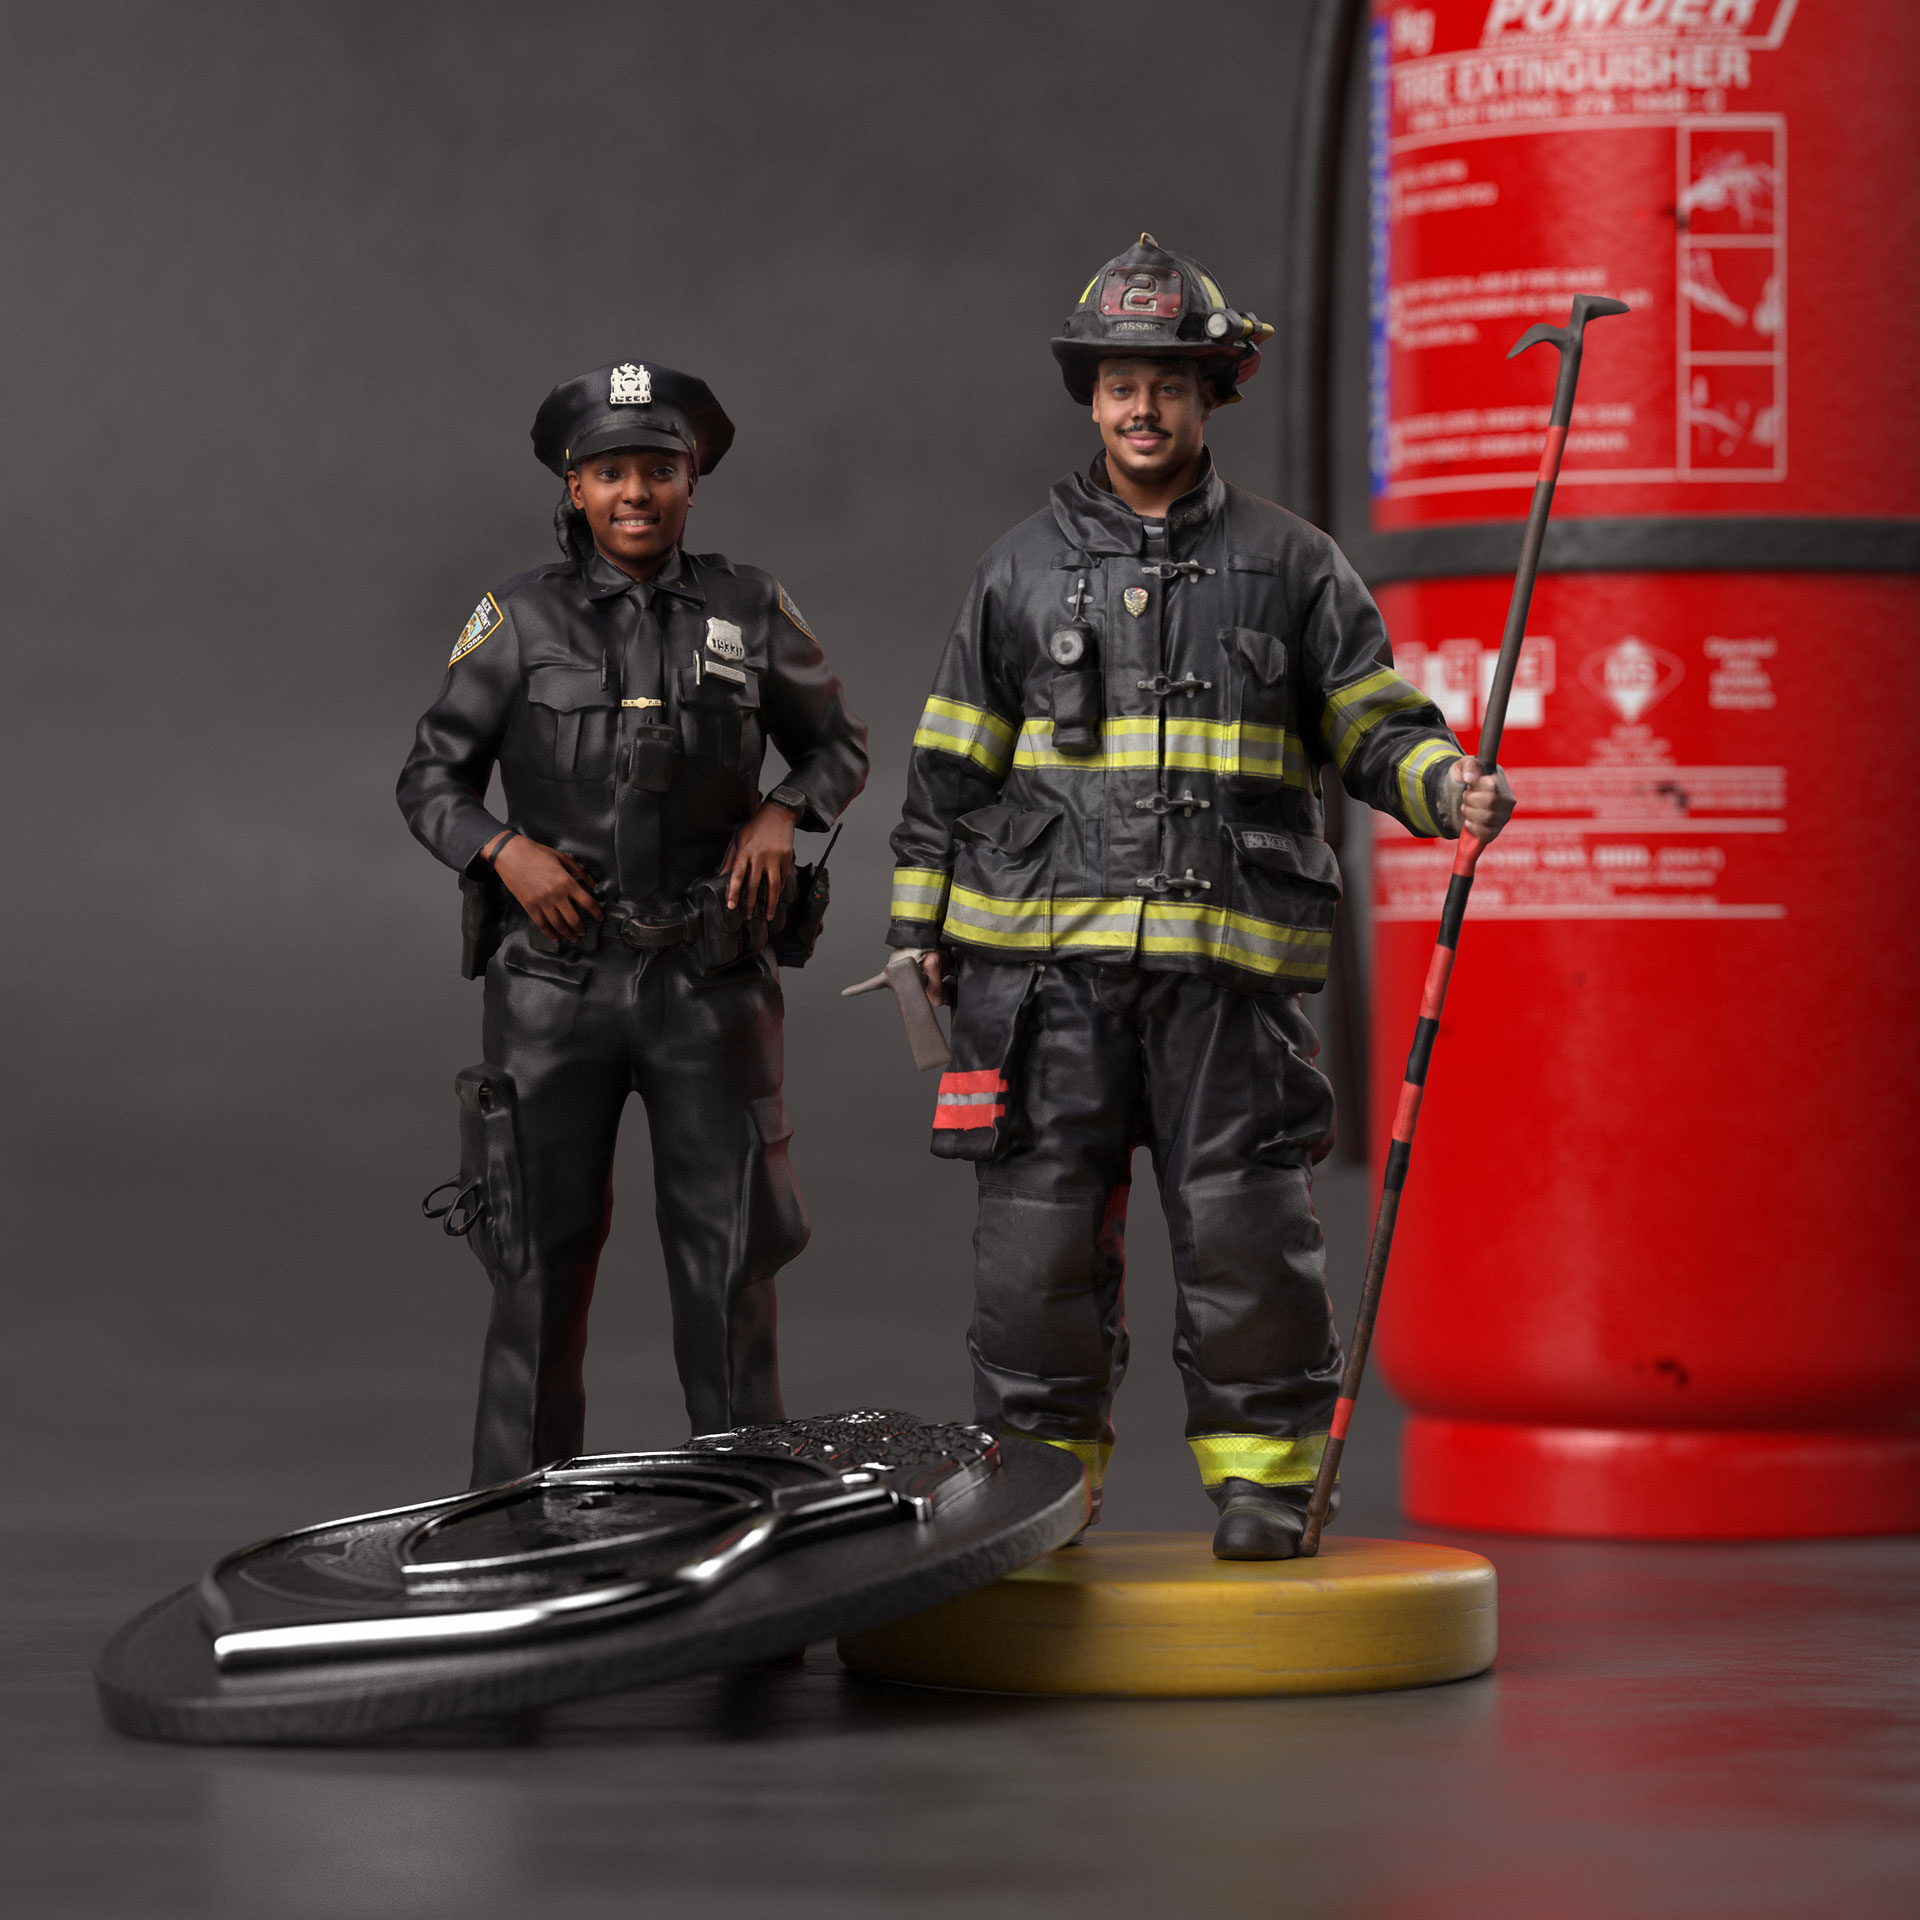 a firefighter and a police officer